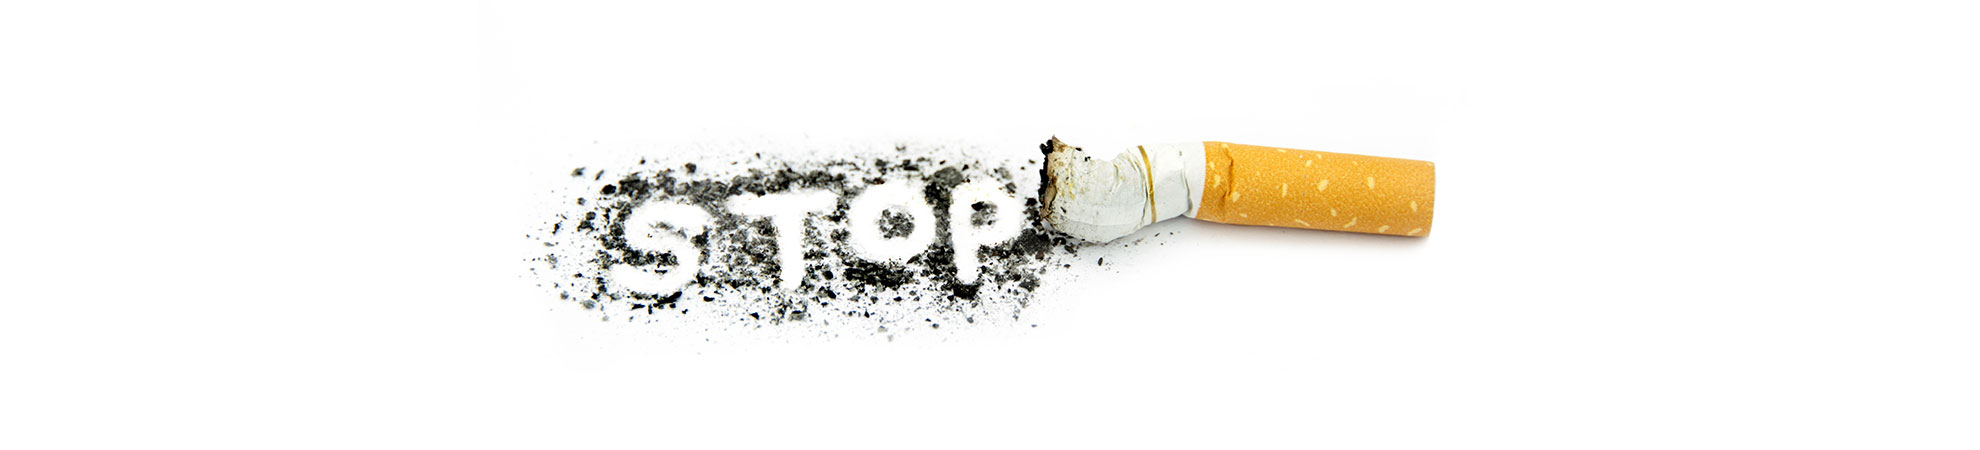 stop smoking today